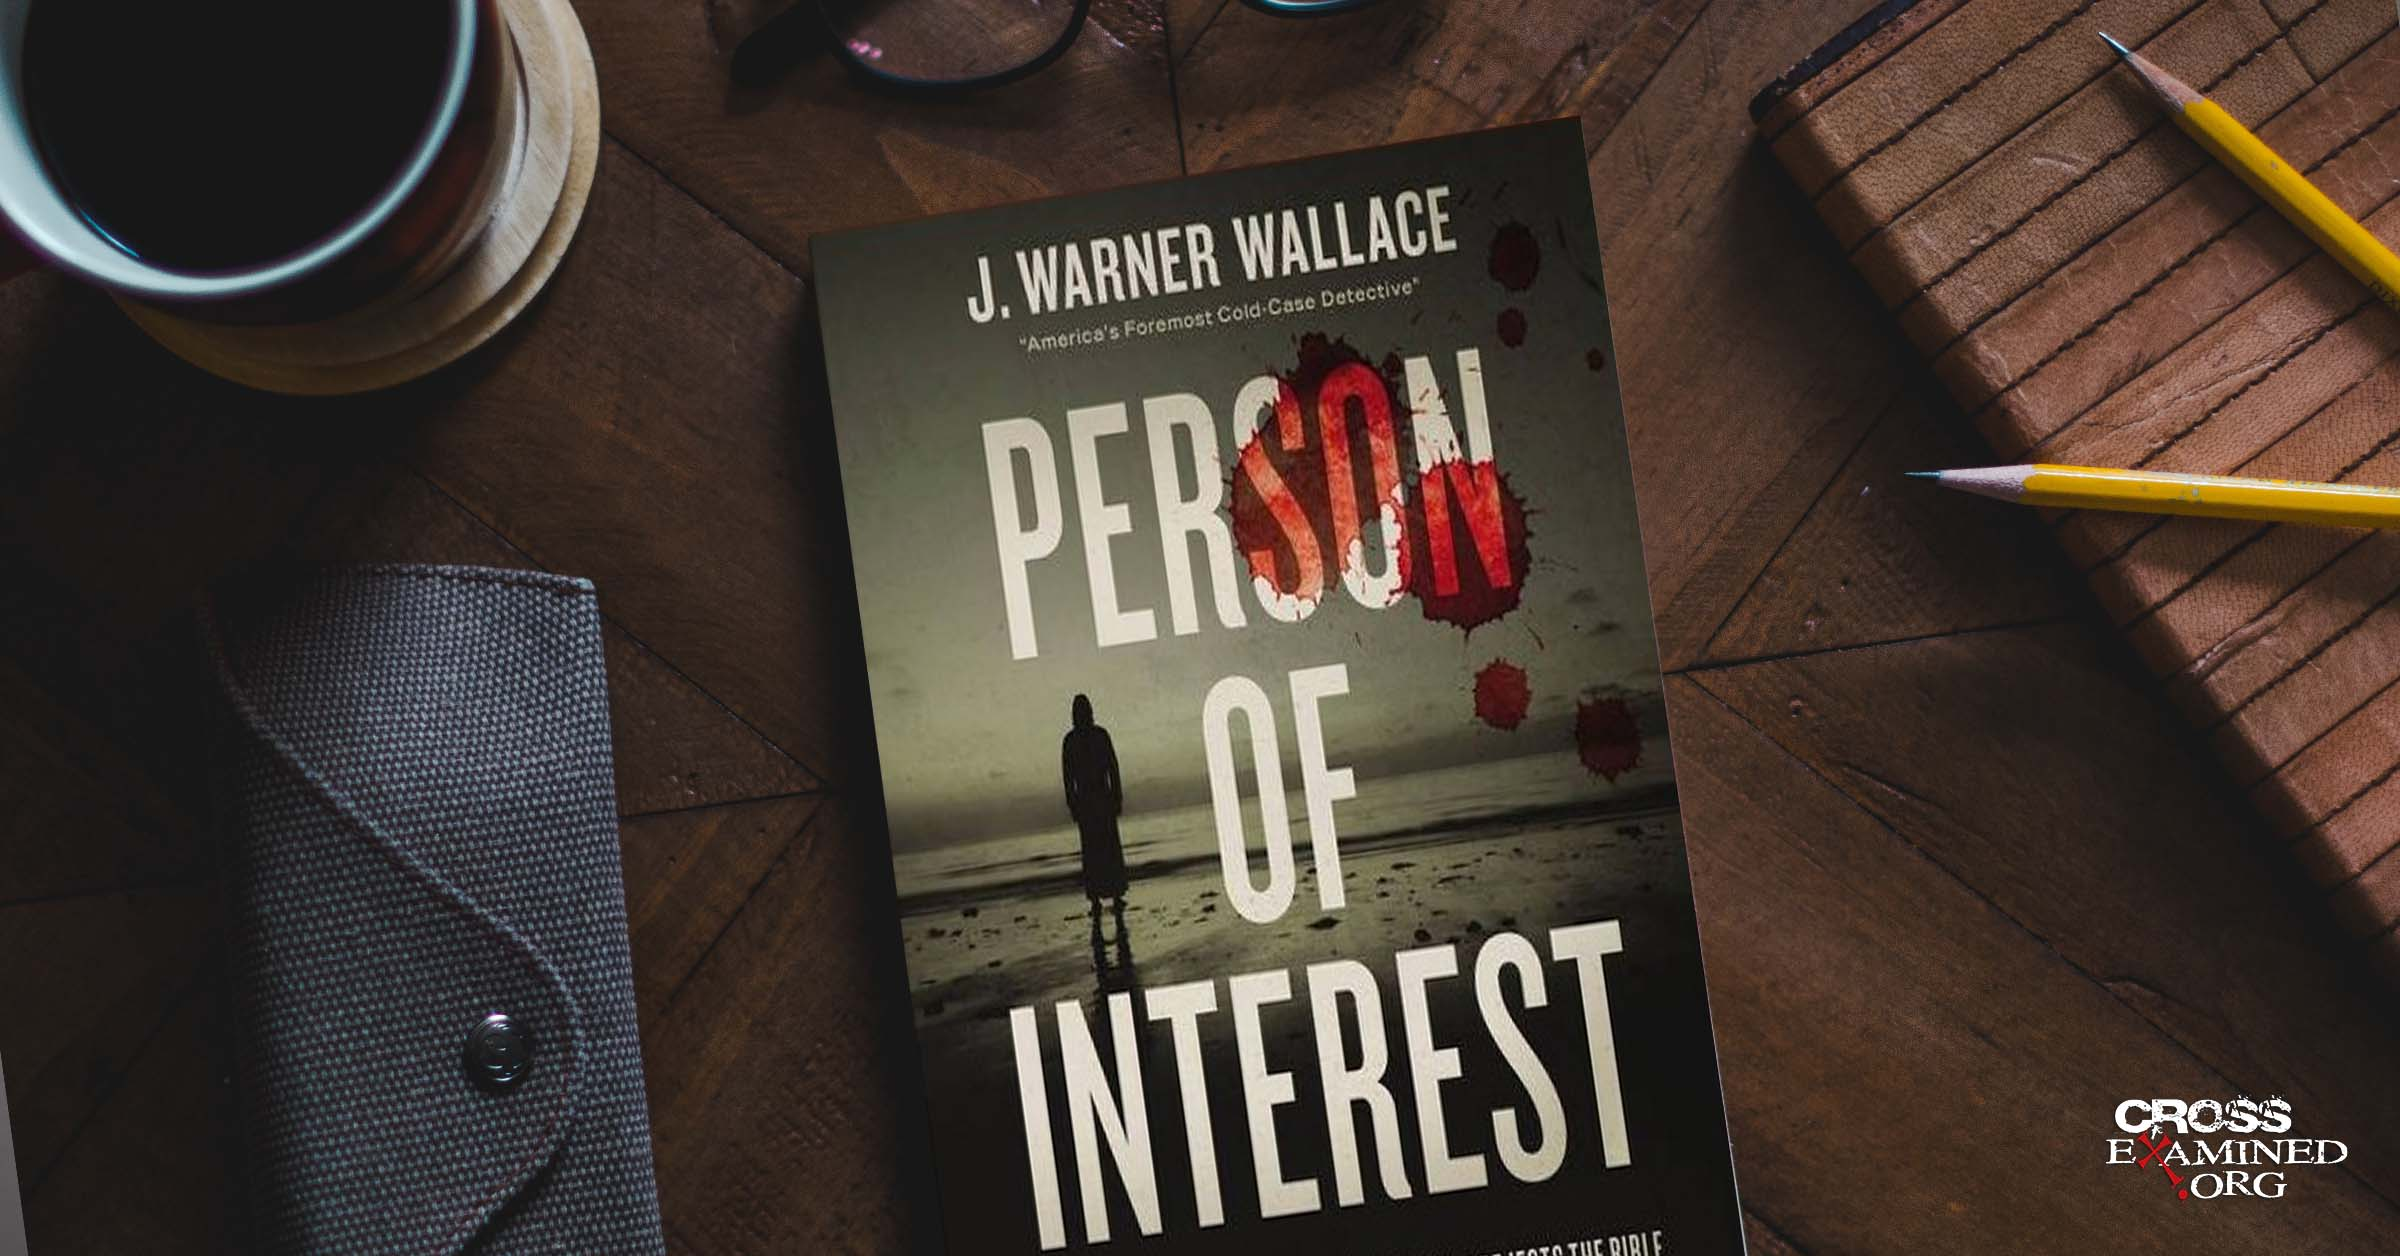 Who is the Leading Person of Interest?